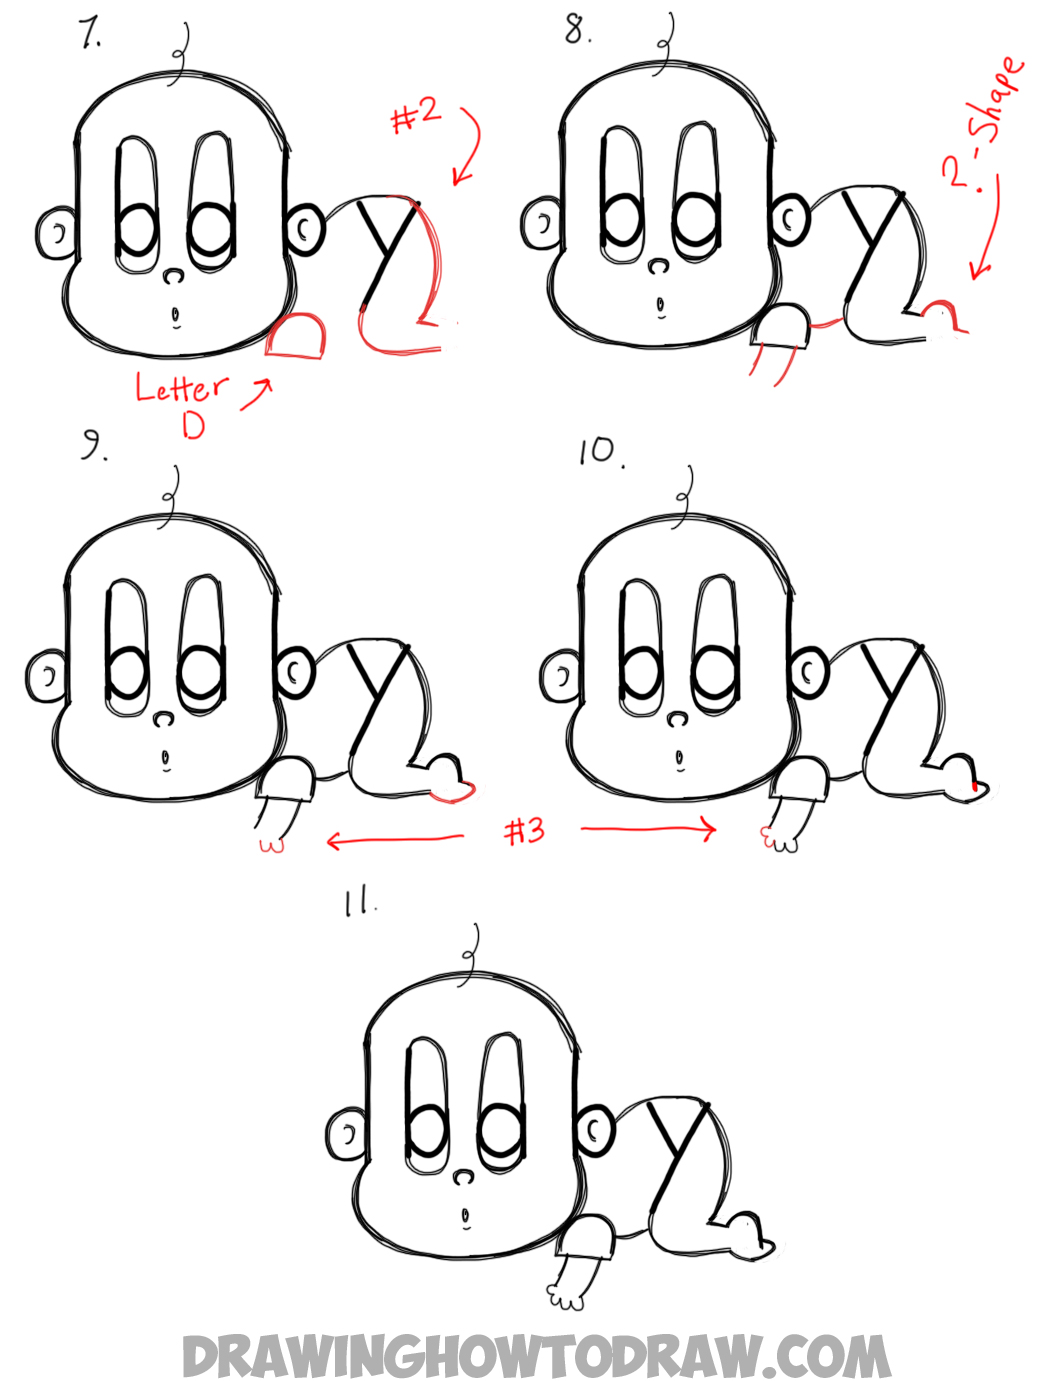 Alphabet letters numbers drawing archives how to draw for Cartoon sketches step by step